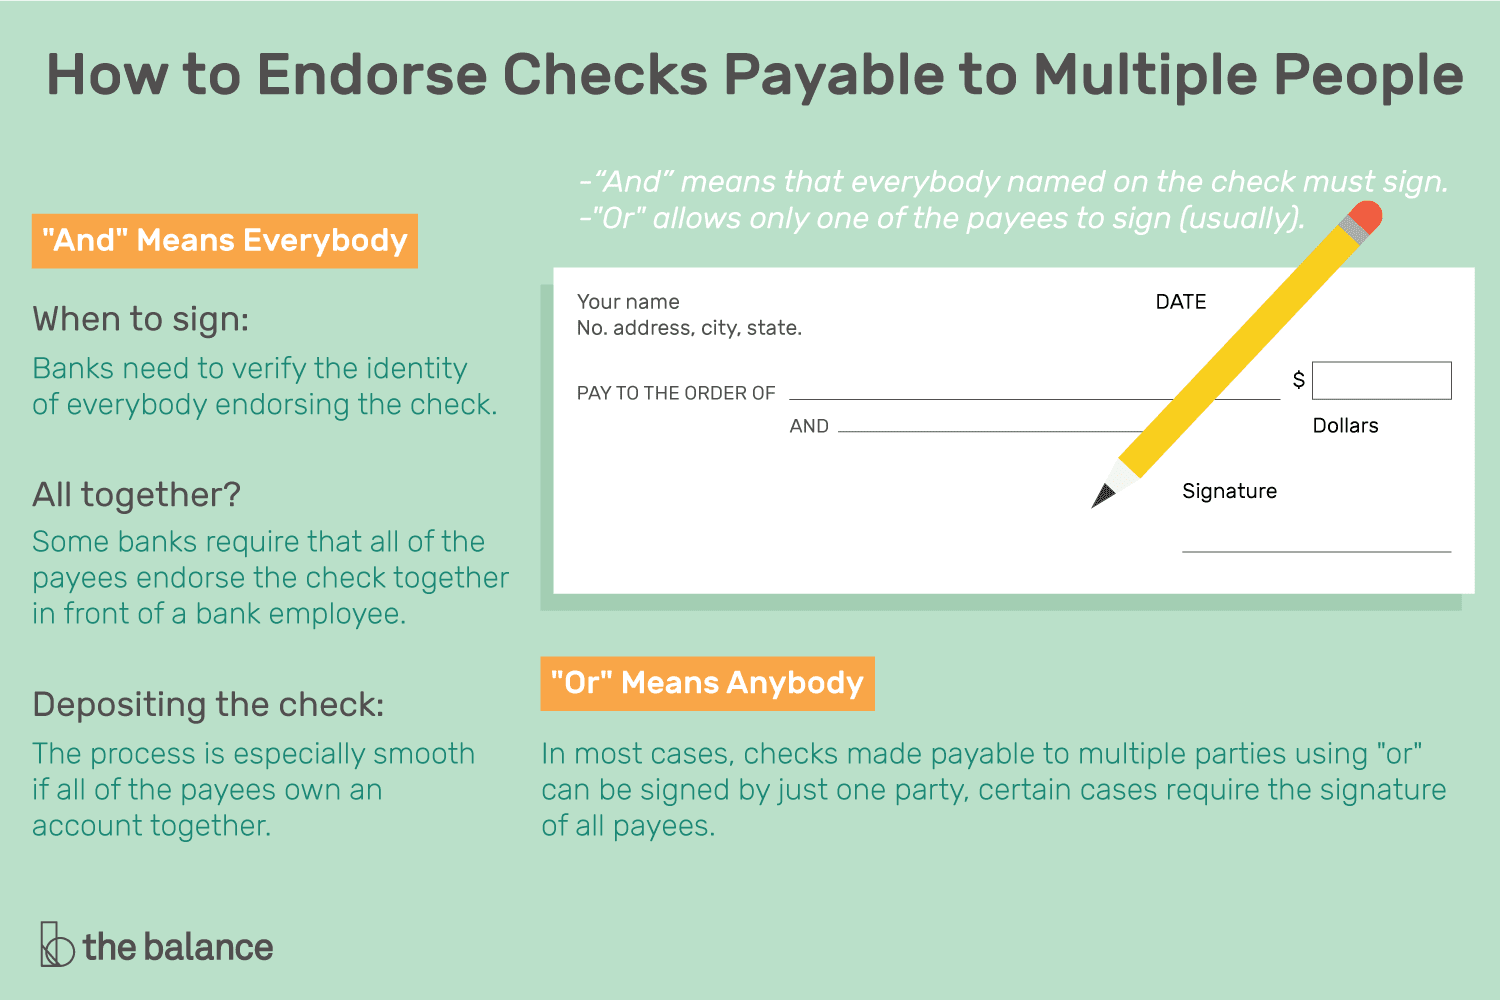 How To Endorse Write Checks To Multiple People